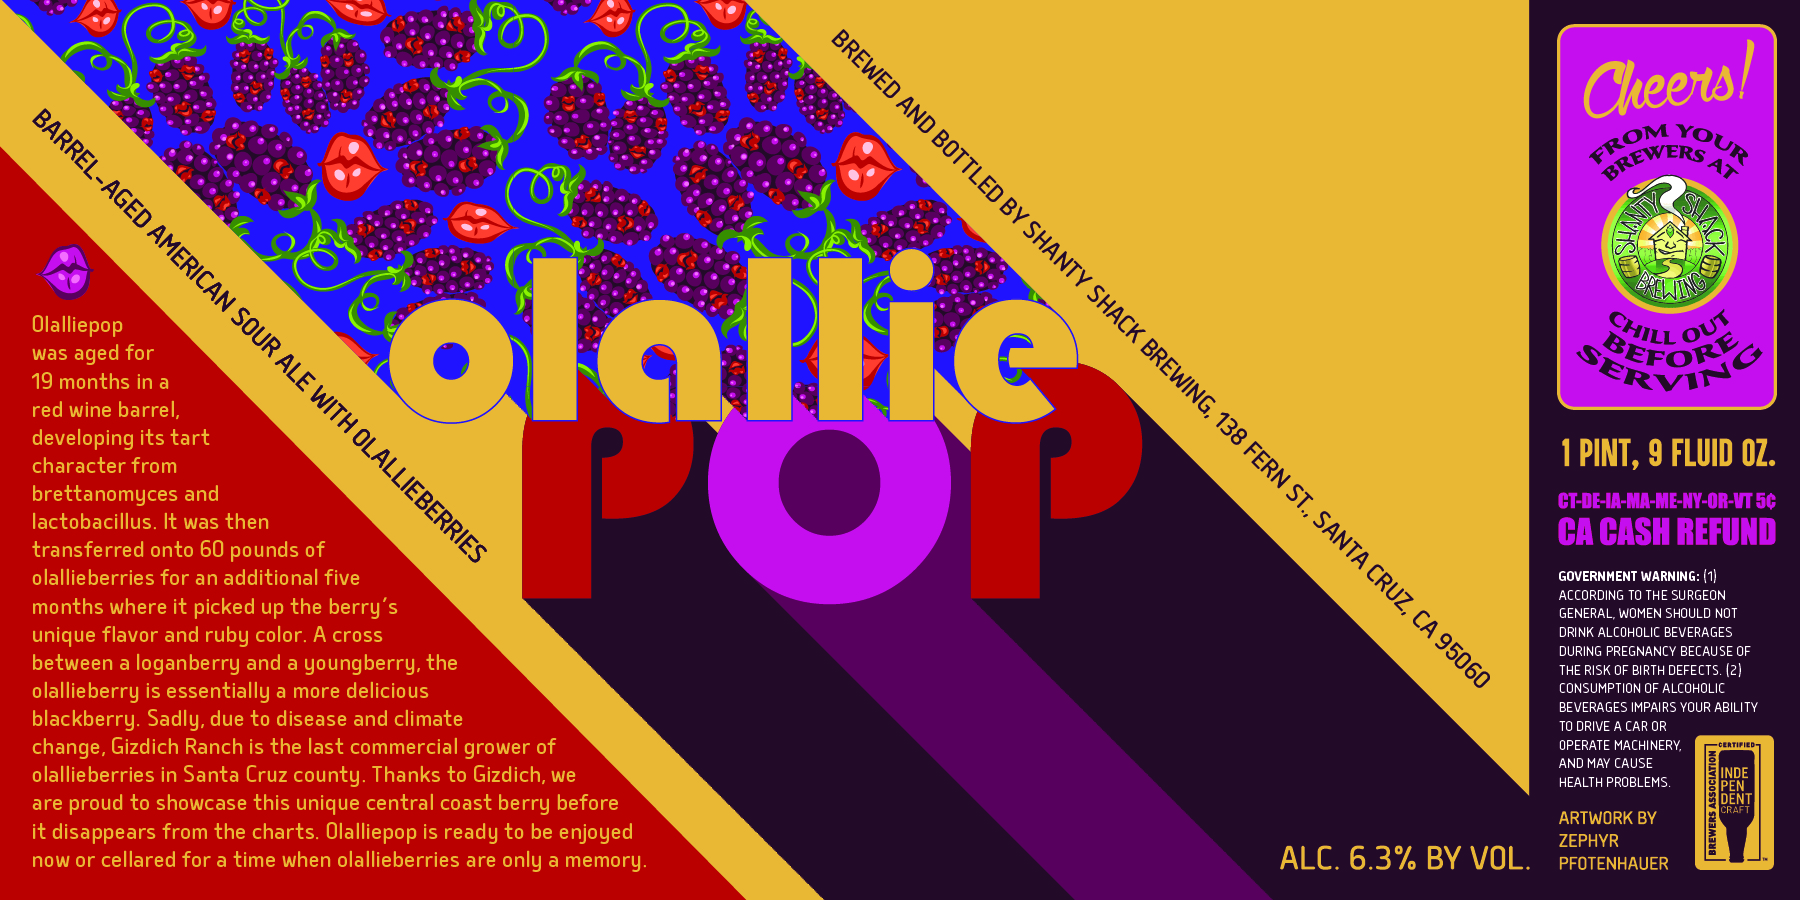 Olallie Pop